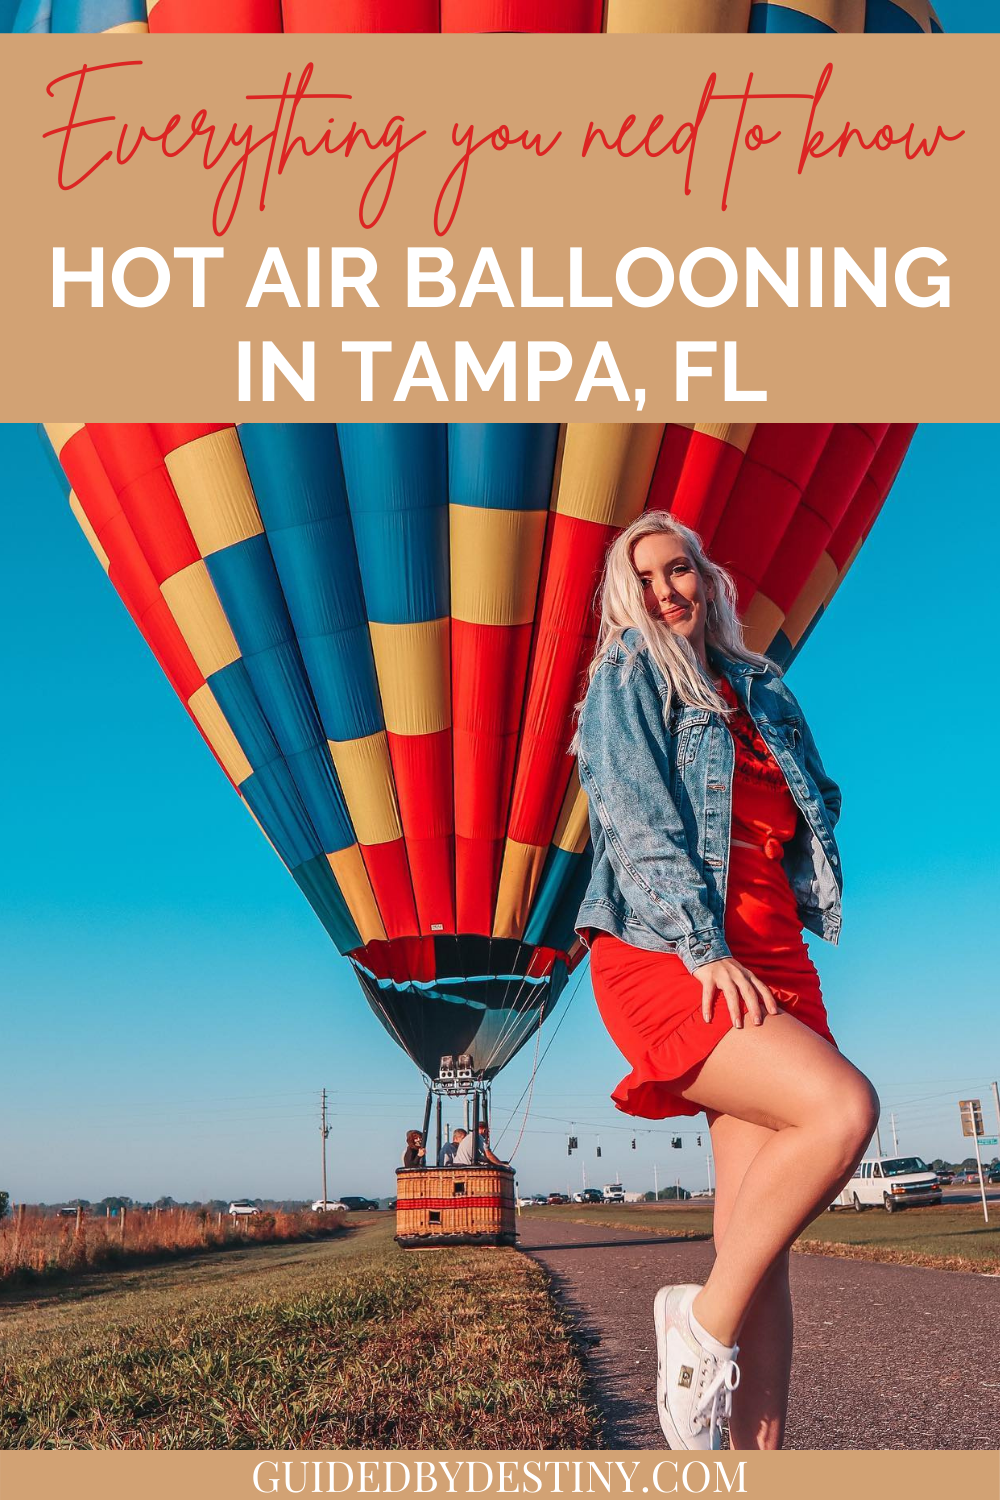 Everything you need to know about hot air ballooning in Tampa